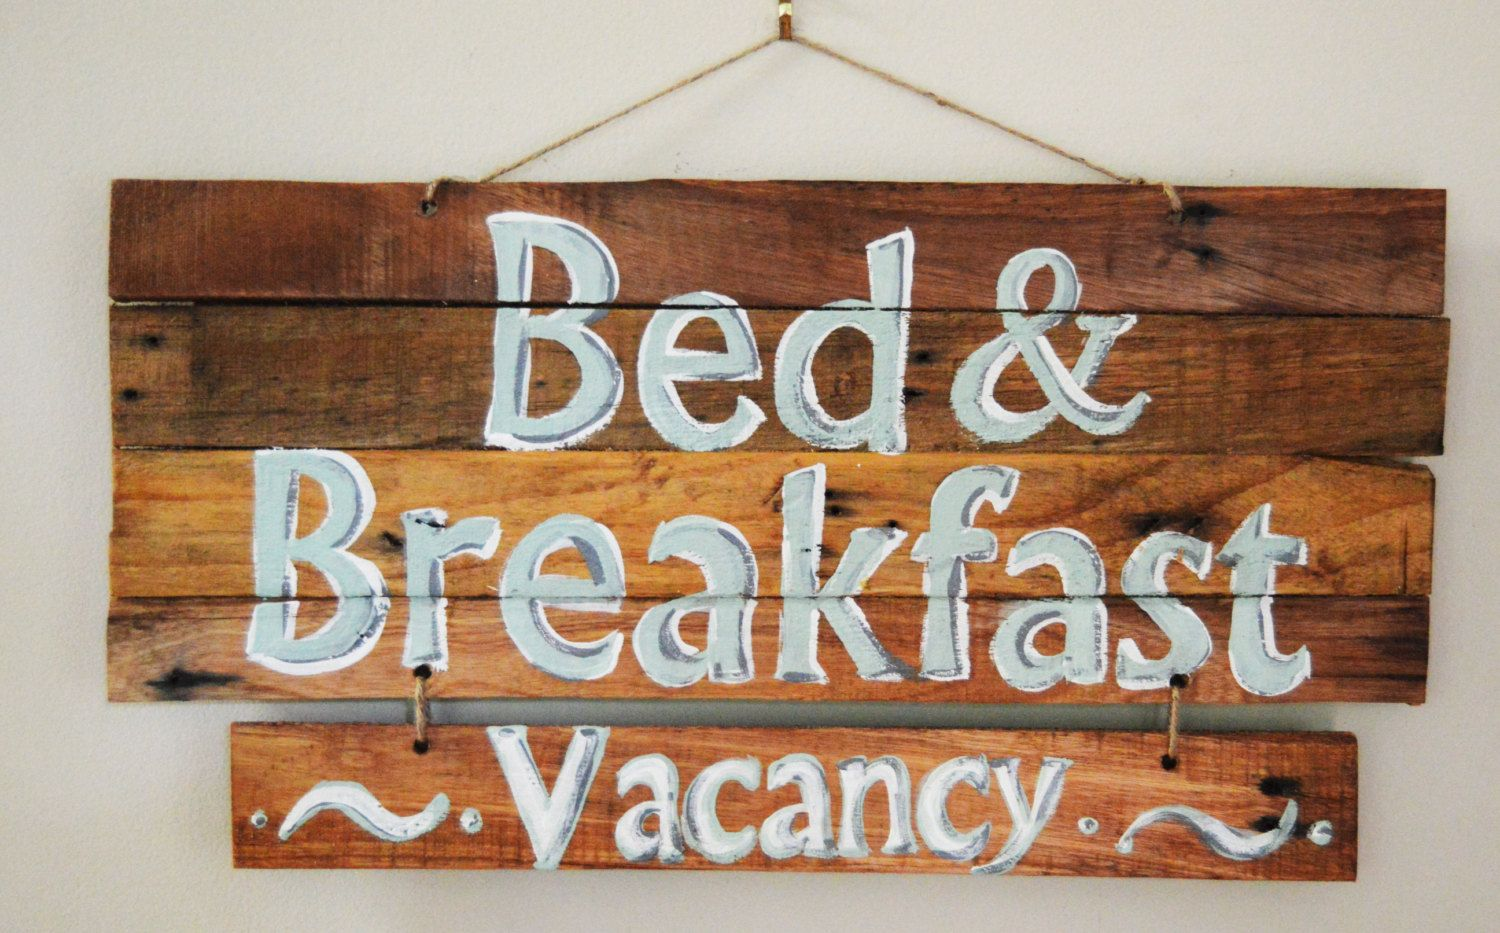 """Reclaimed wood sign with """"Bed and Breakfast"""" and """"Vacancy"""". by Artfulcastle on Etsy"""